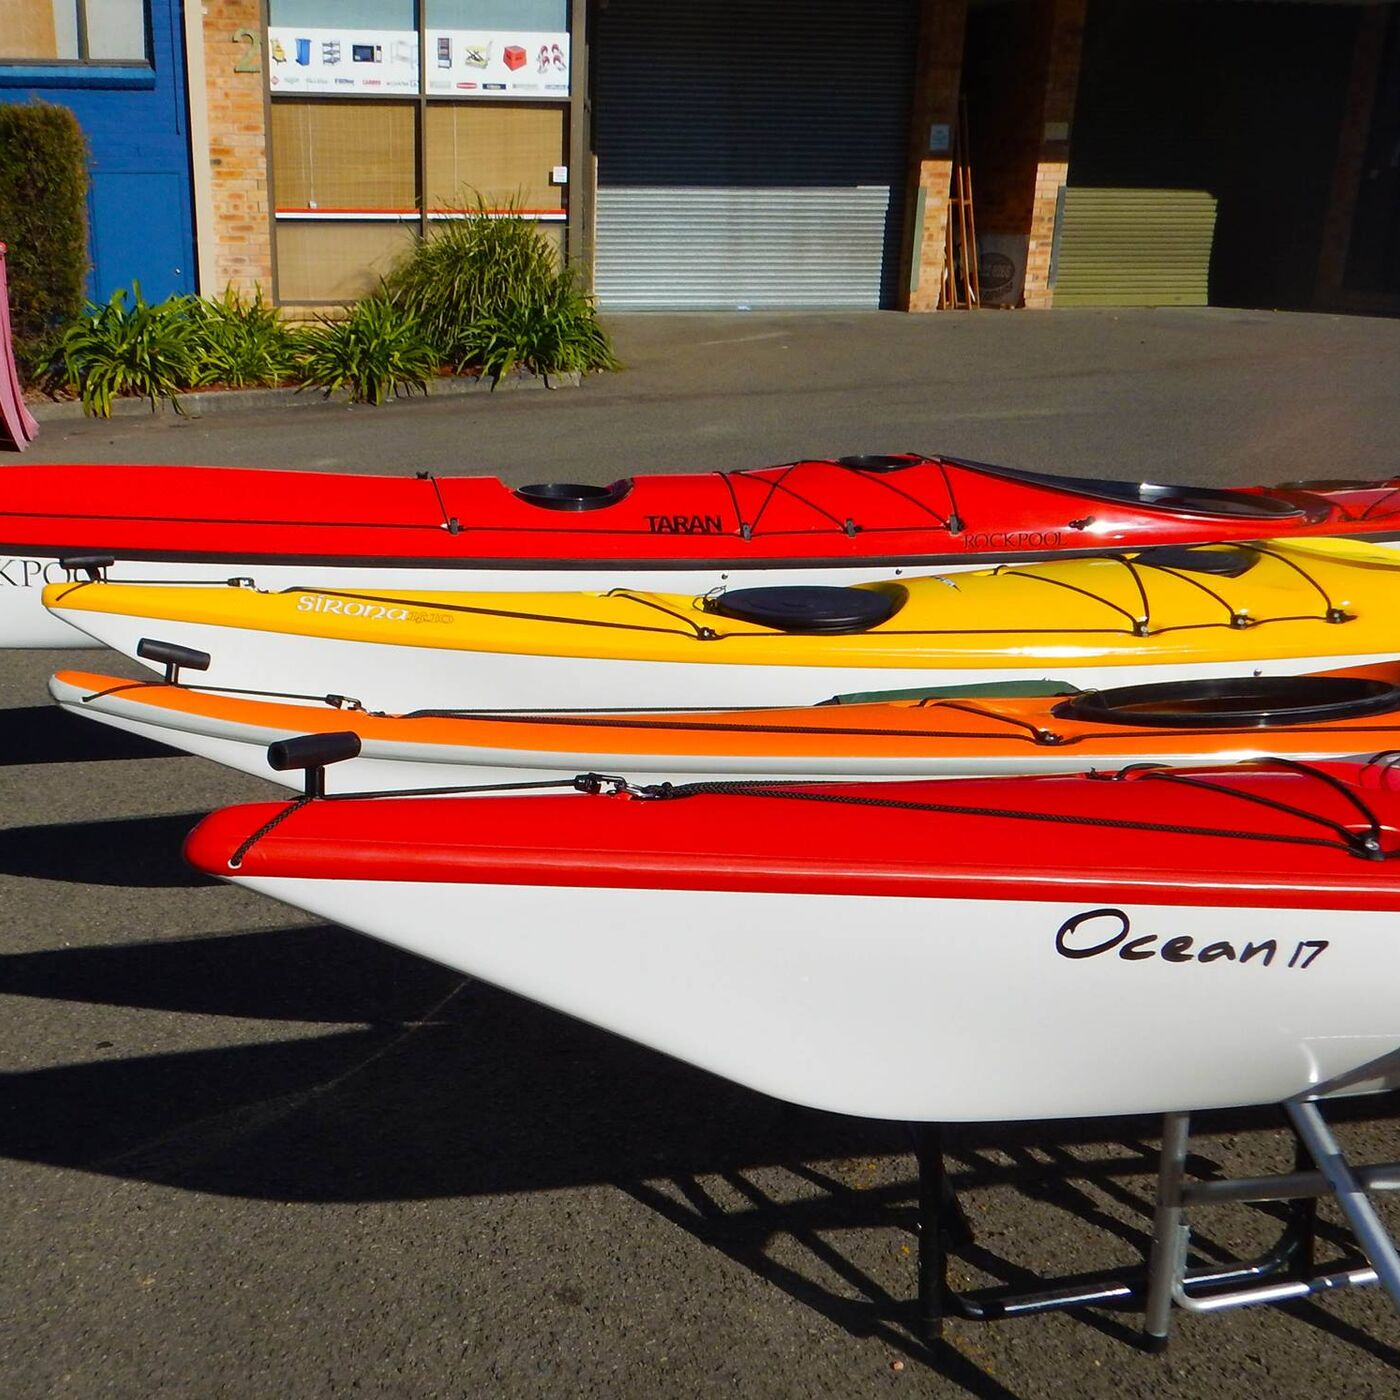 Episode 3 - What Are Our Favourite Sea Kayaks?